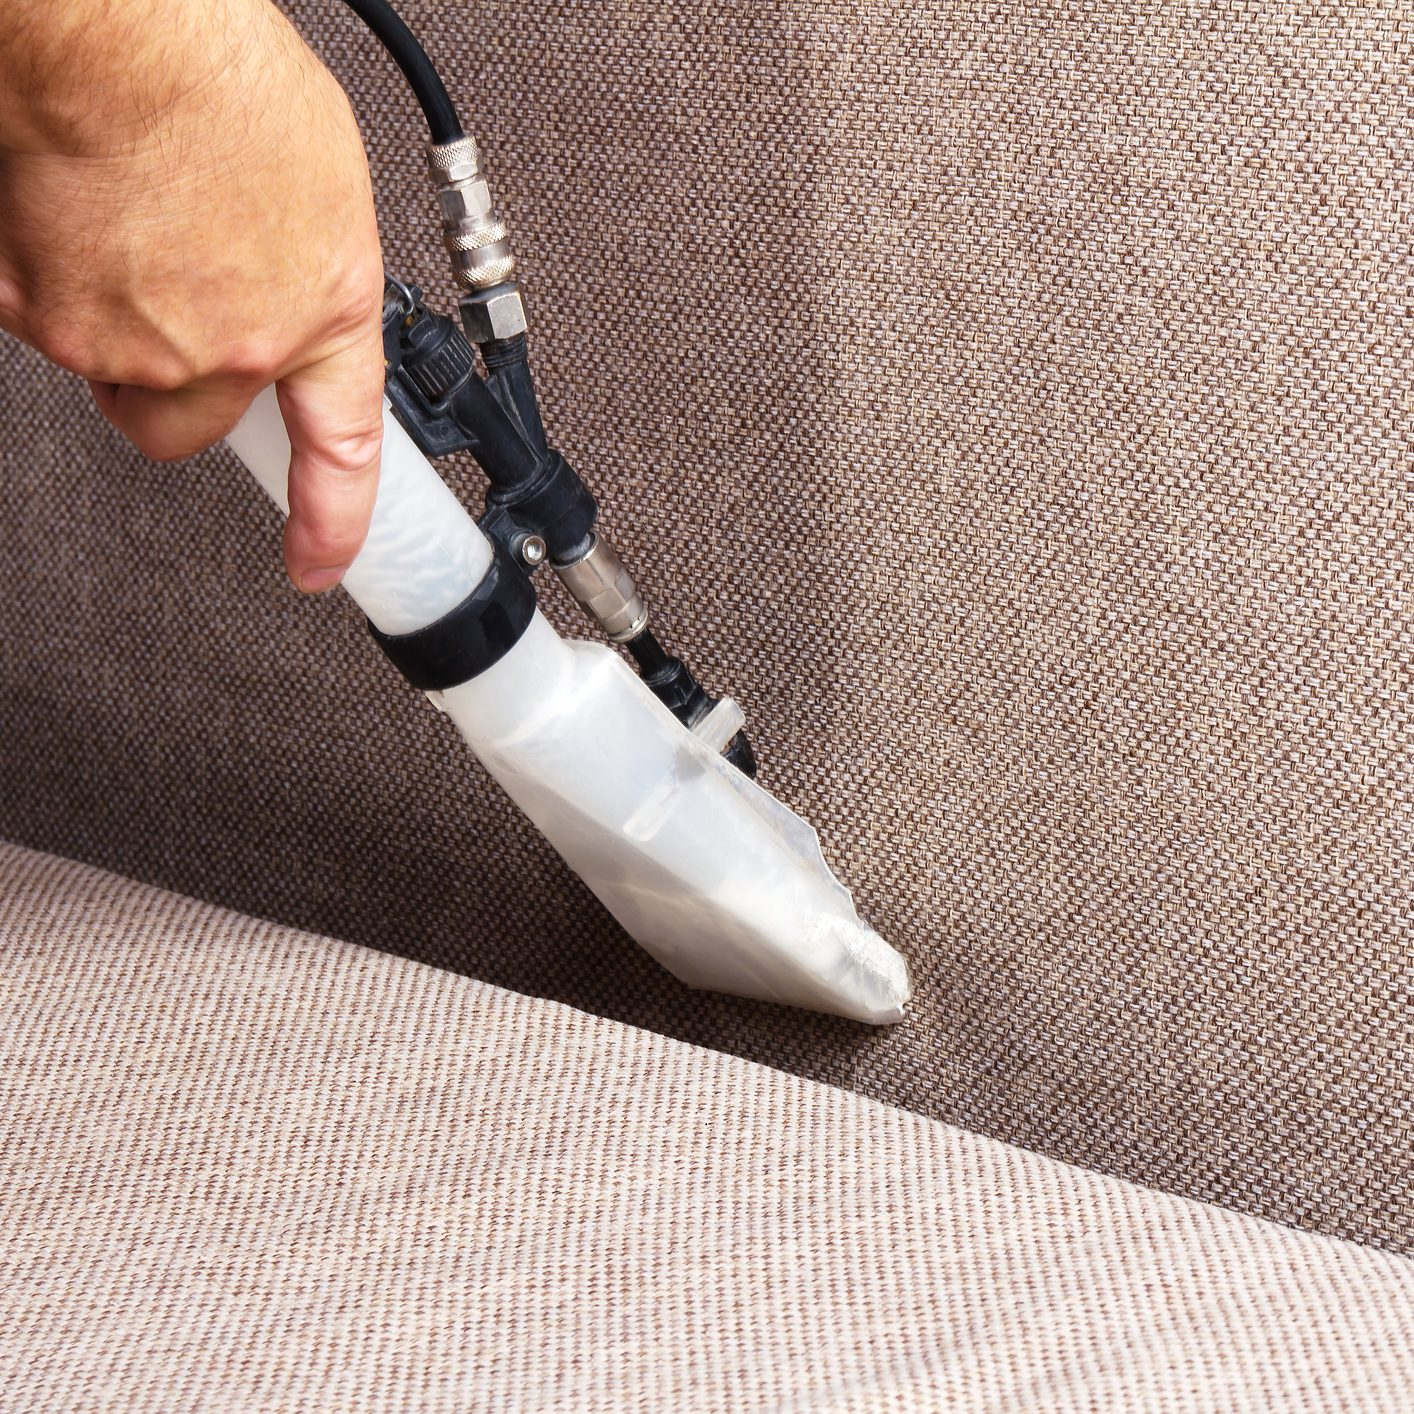 Upholstery cleaning grey fabric